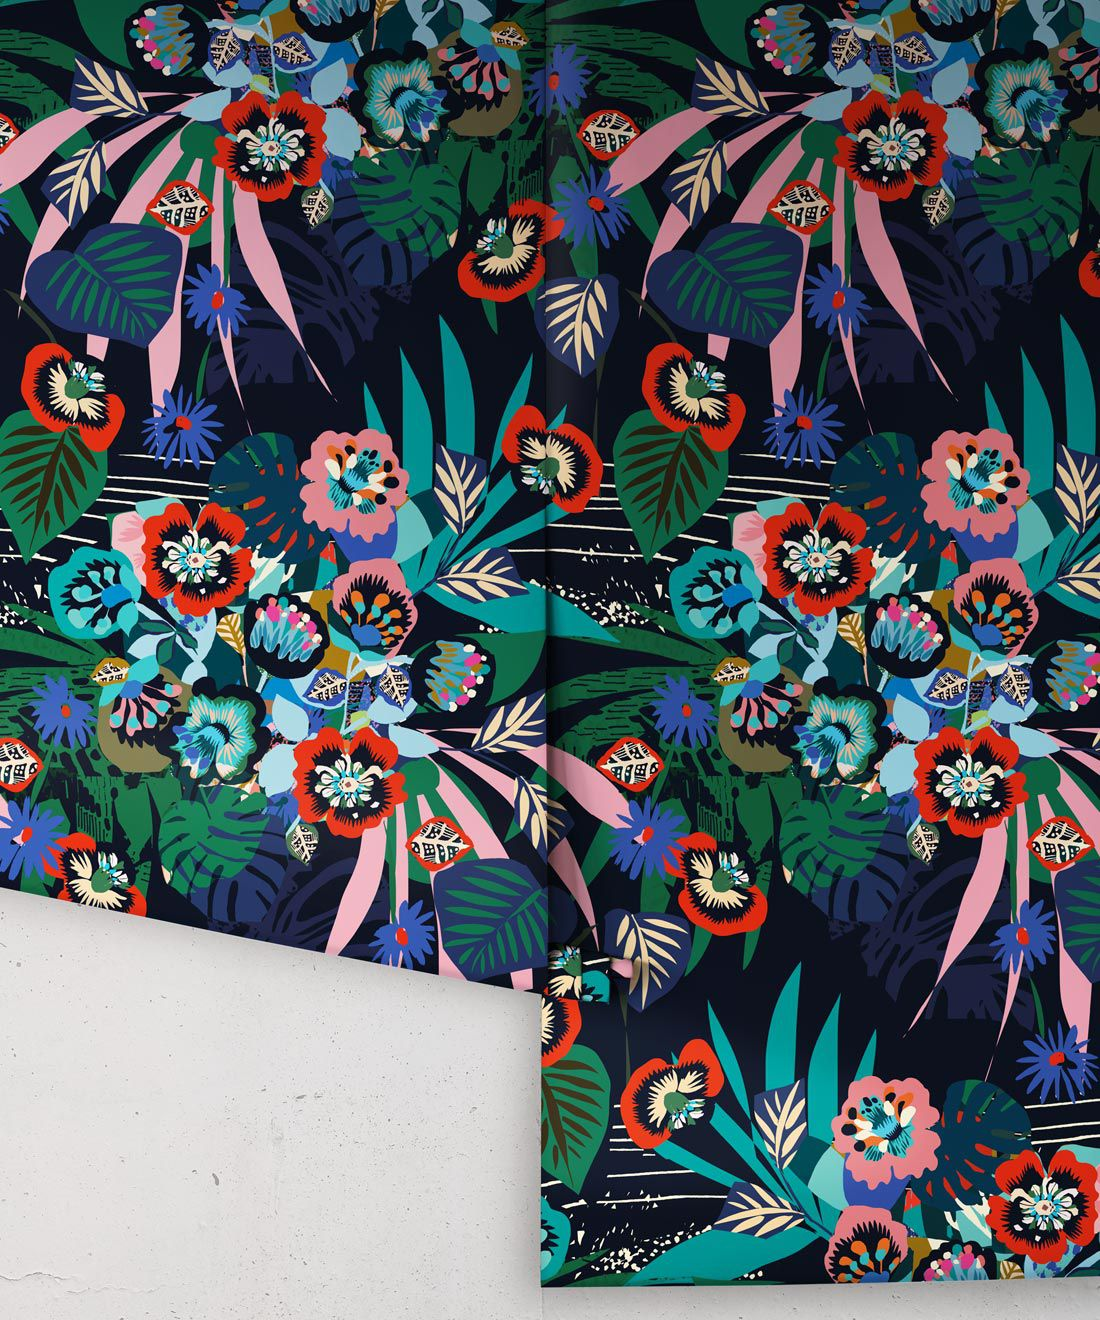 aper • Kimono Wallpaper • Japanese Wallpaper • Deep Colorful Wallpaper • Rolls